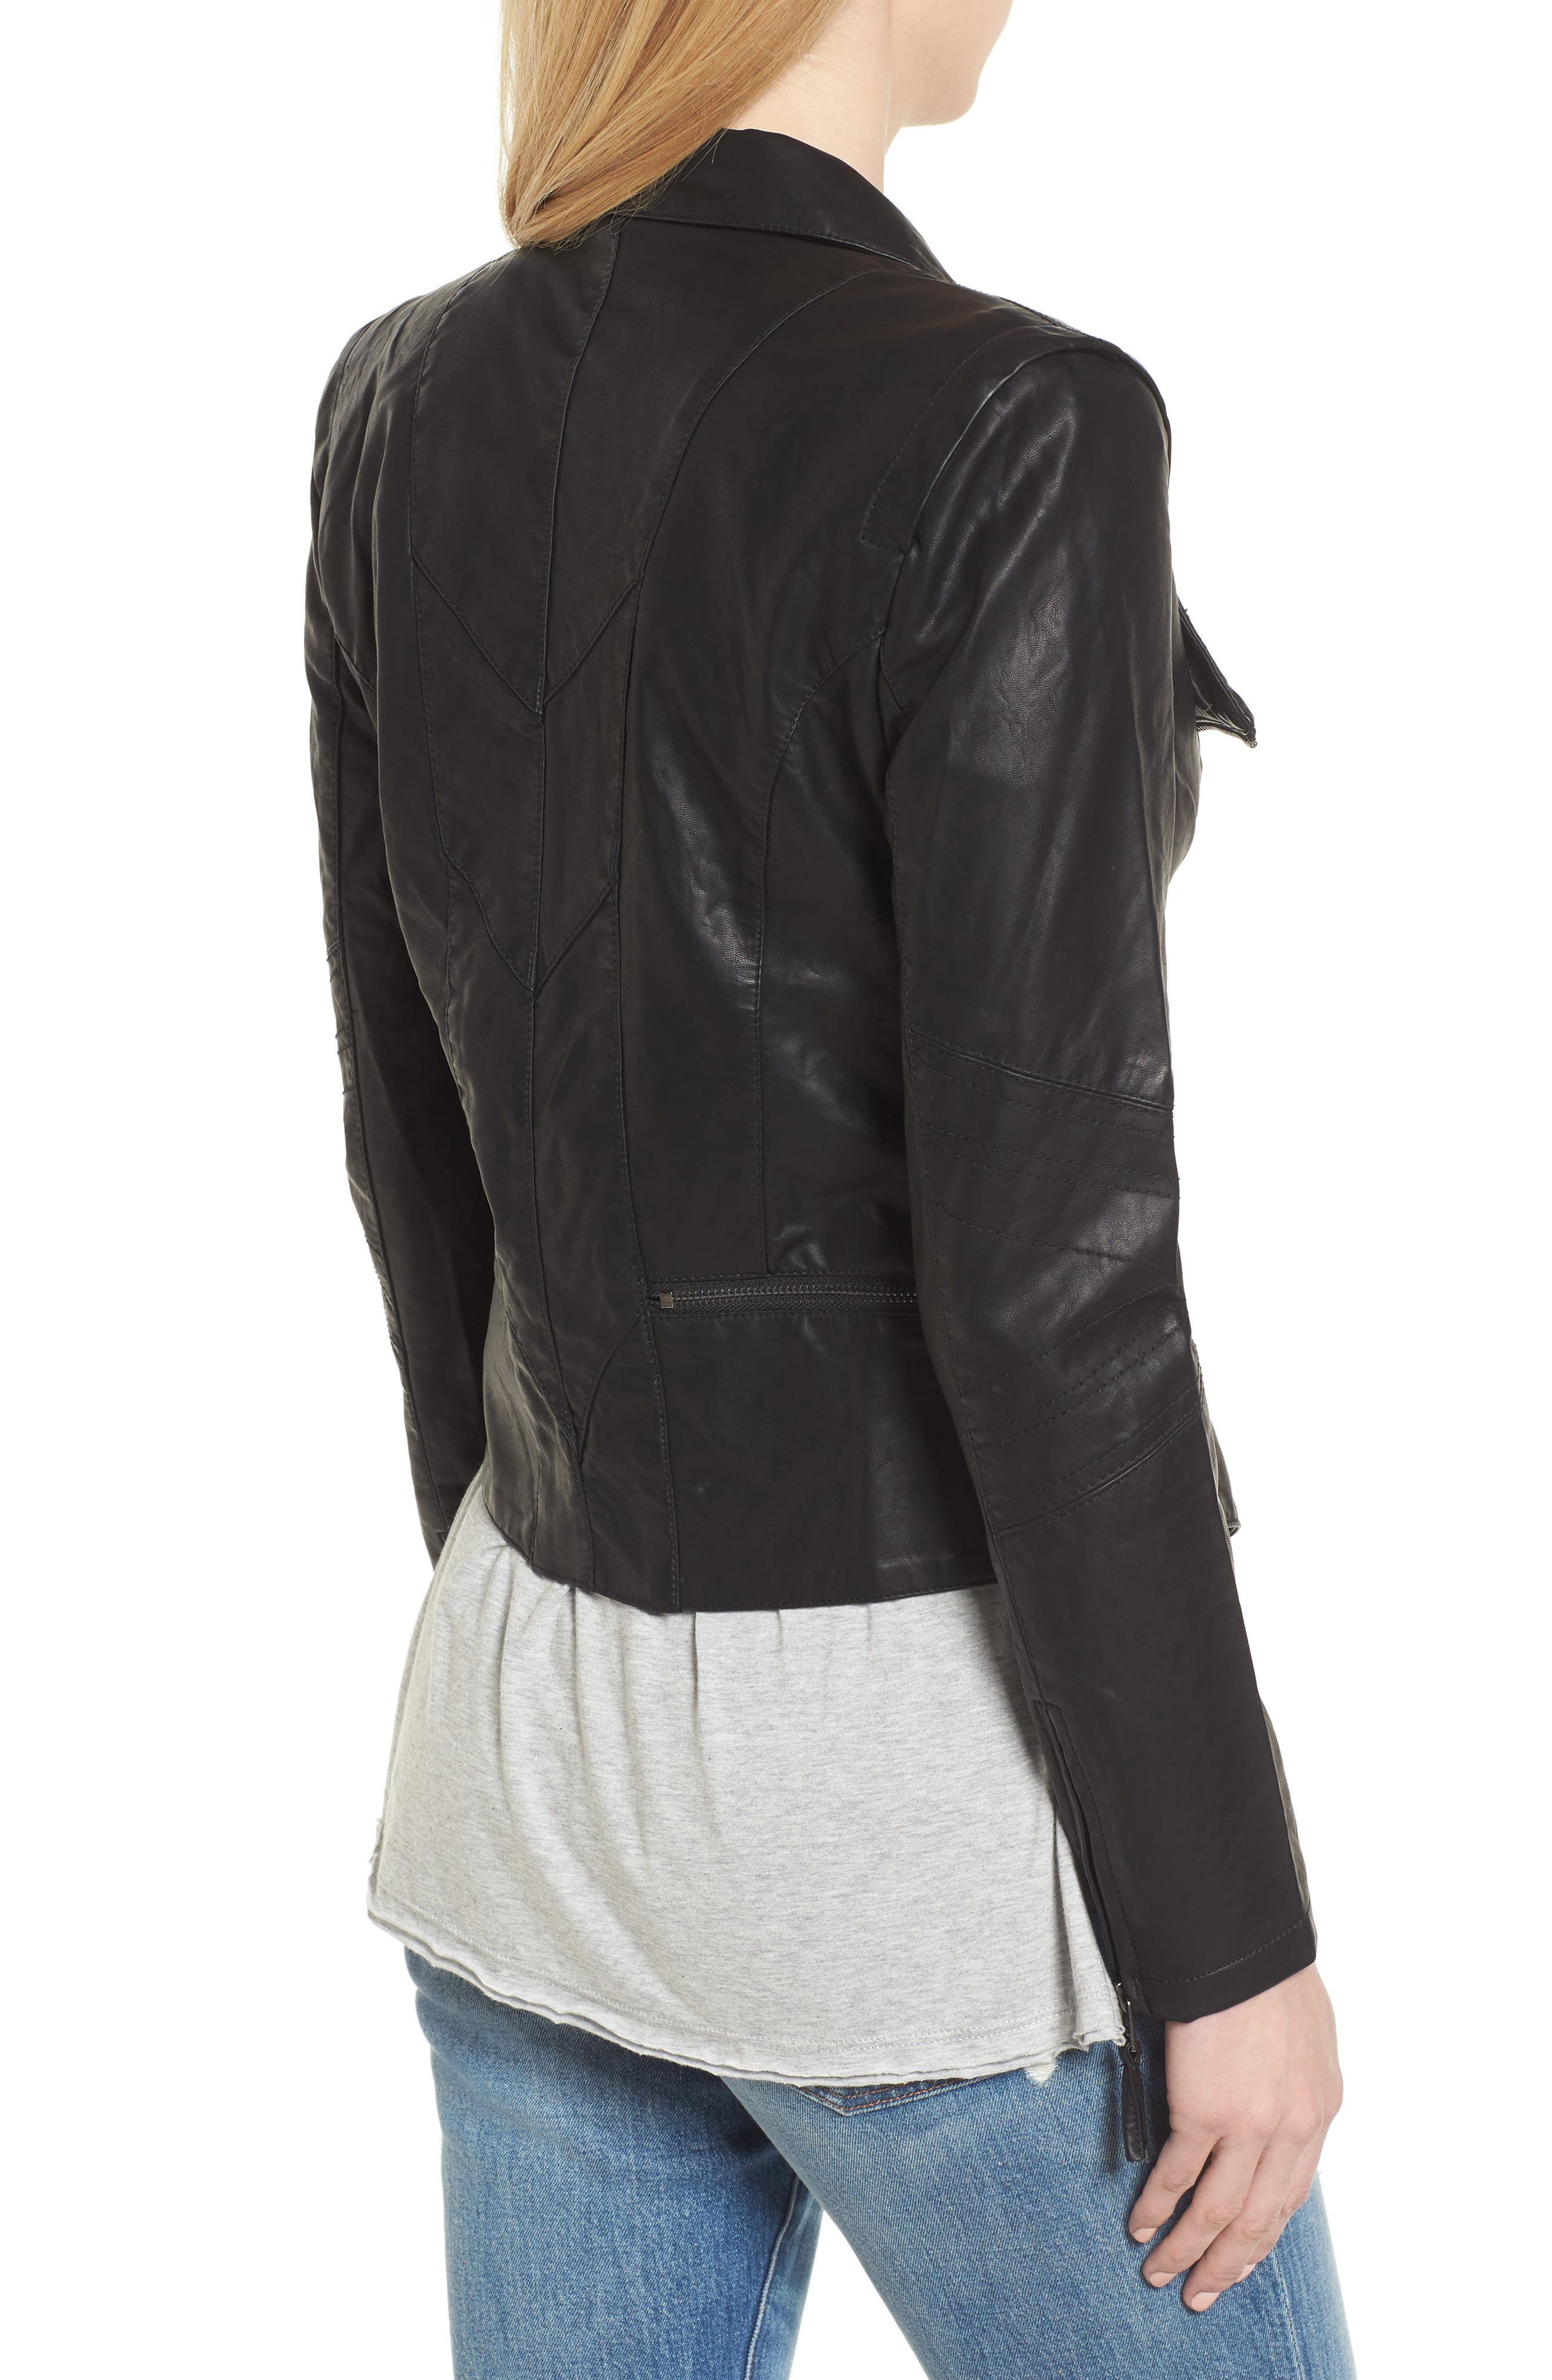 BLANKNYC, Faux Leather Jacket, Alternate thumbnail 2, color, BLACK